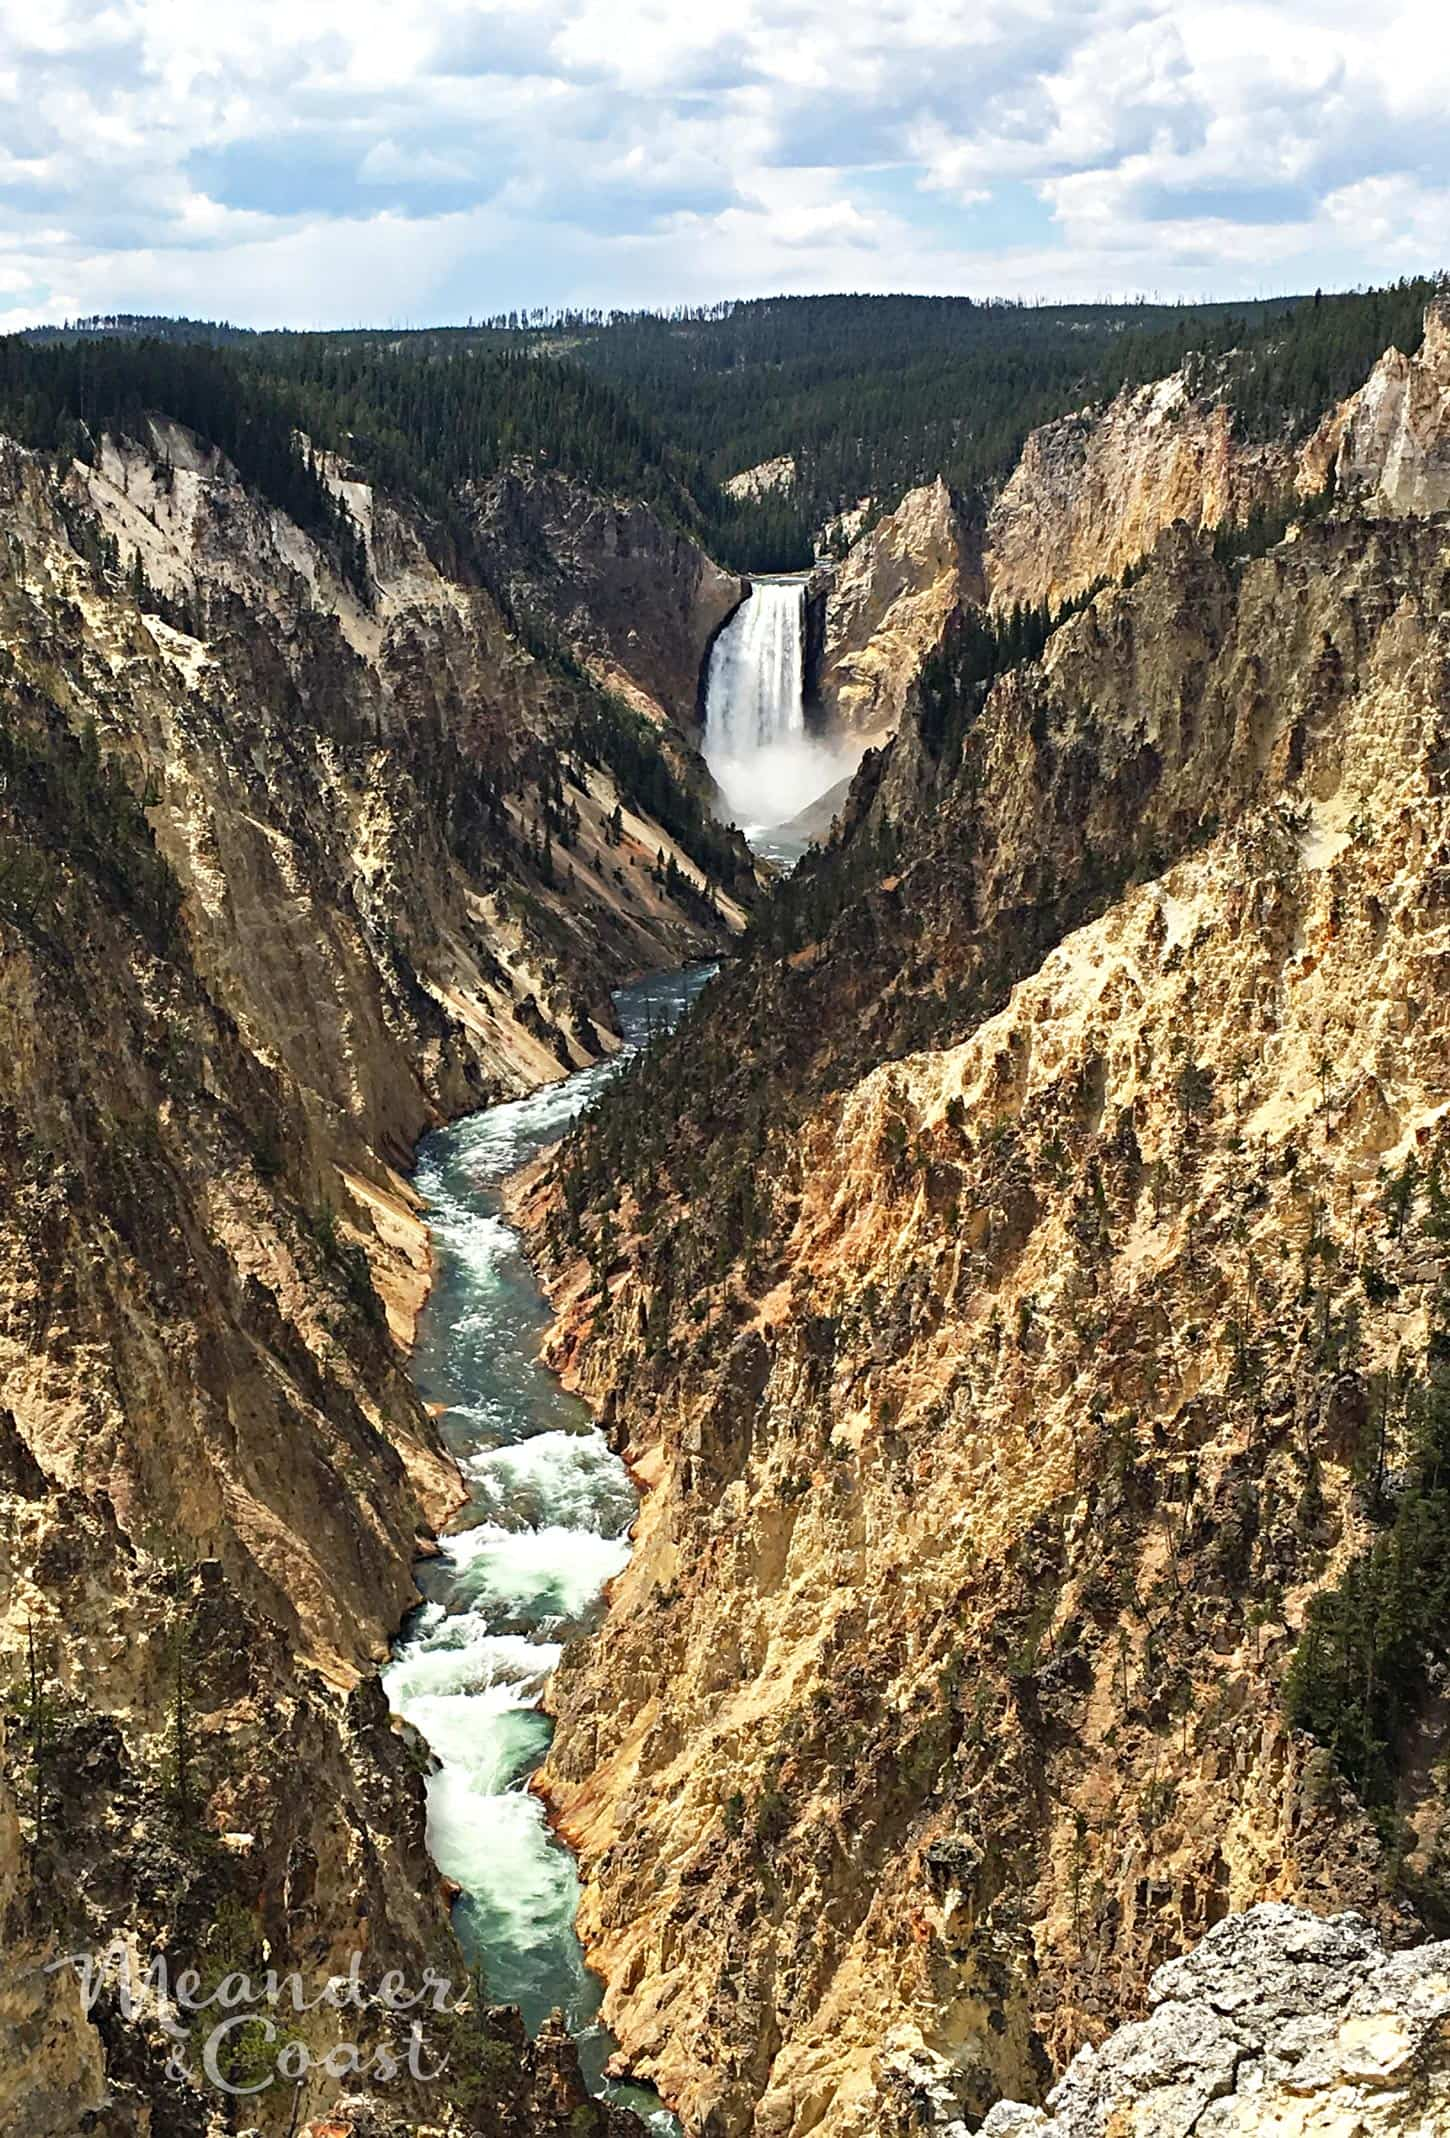 Artist's Point is the most popular place to see the Grand Canyon of the Yellowstone. | Best Yellowstone National Park Attractions that aren't Old Faithful. Meander & Coast #yellowstone #nationalpark #yellowstoneattractions #artistspoint #wyoming #grandcanyon